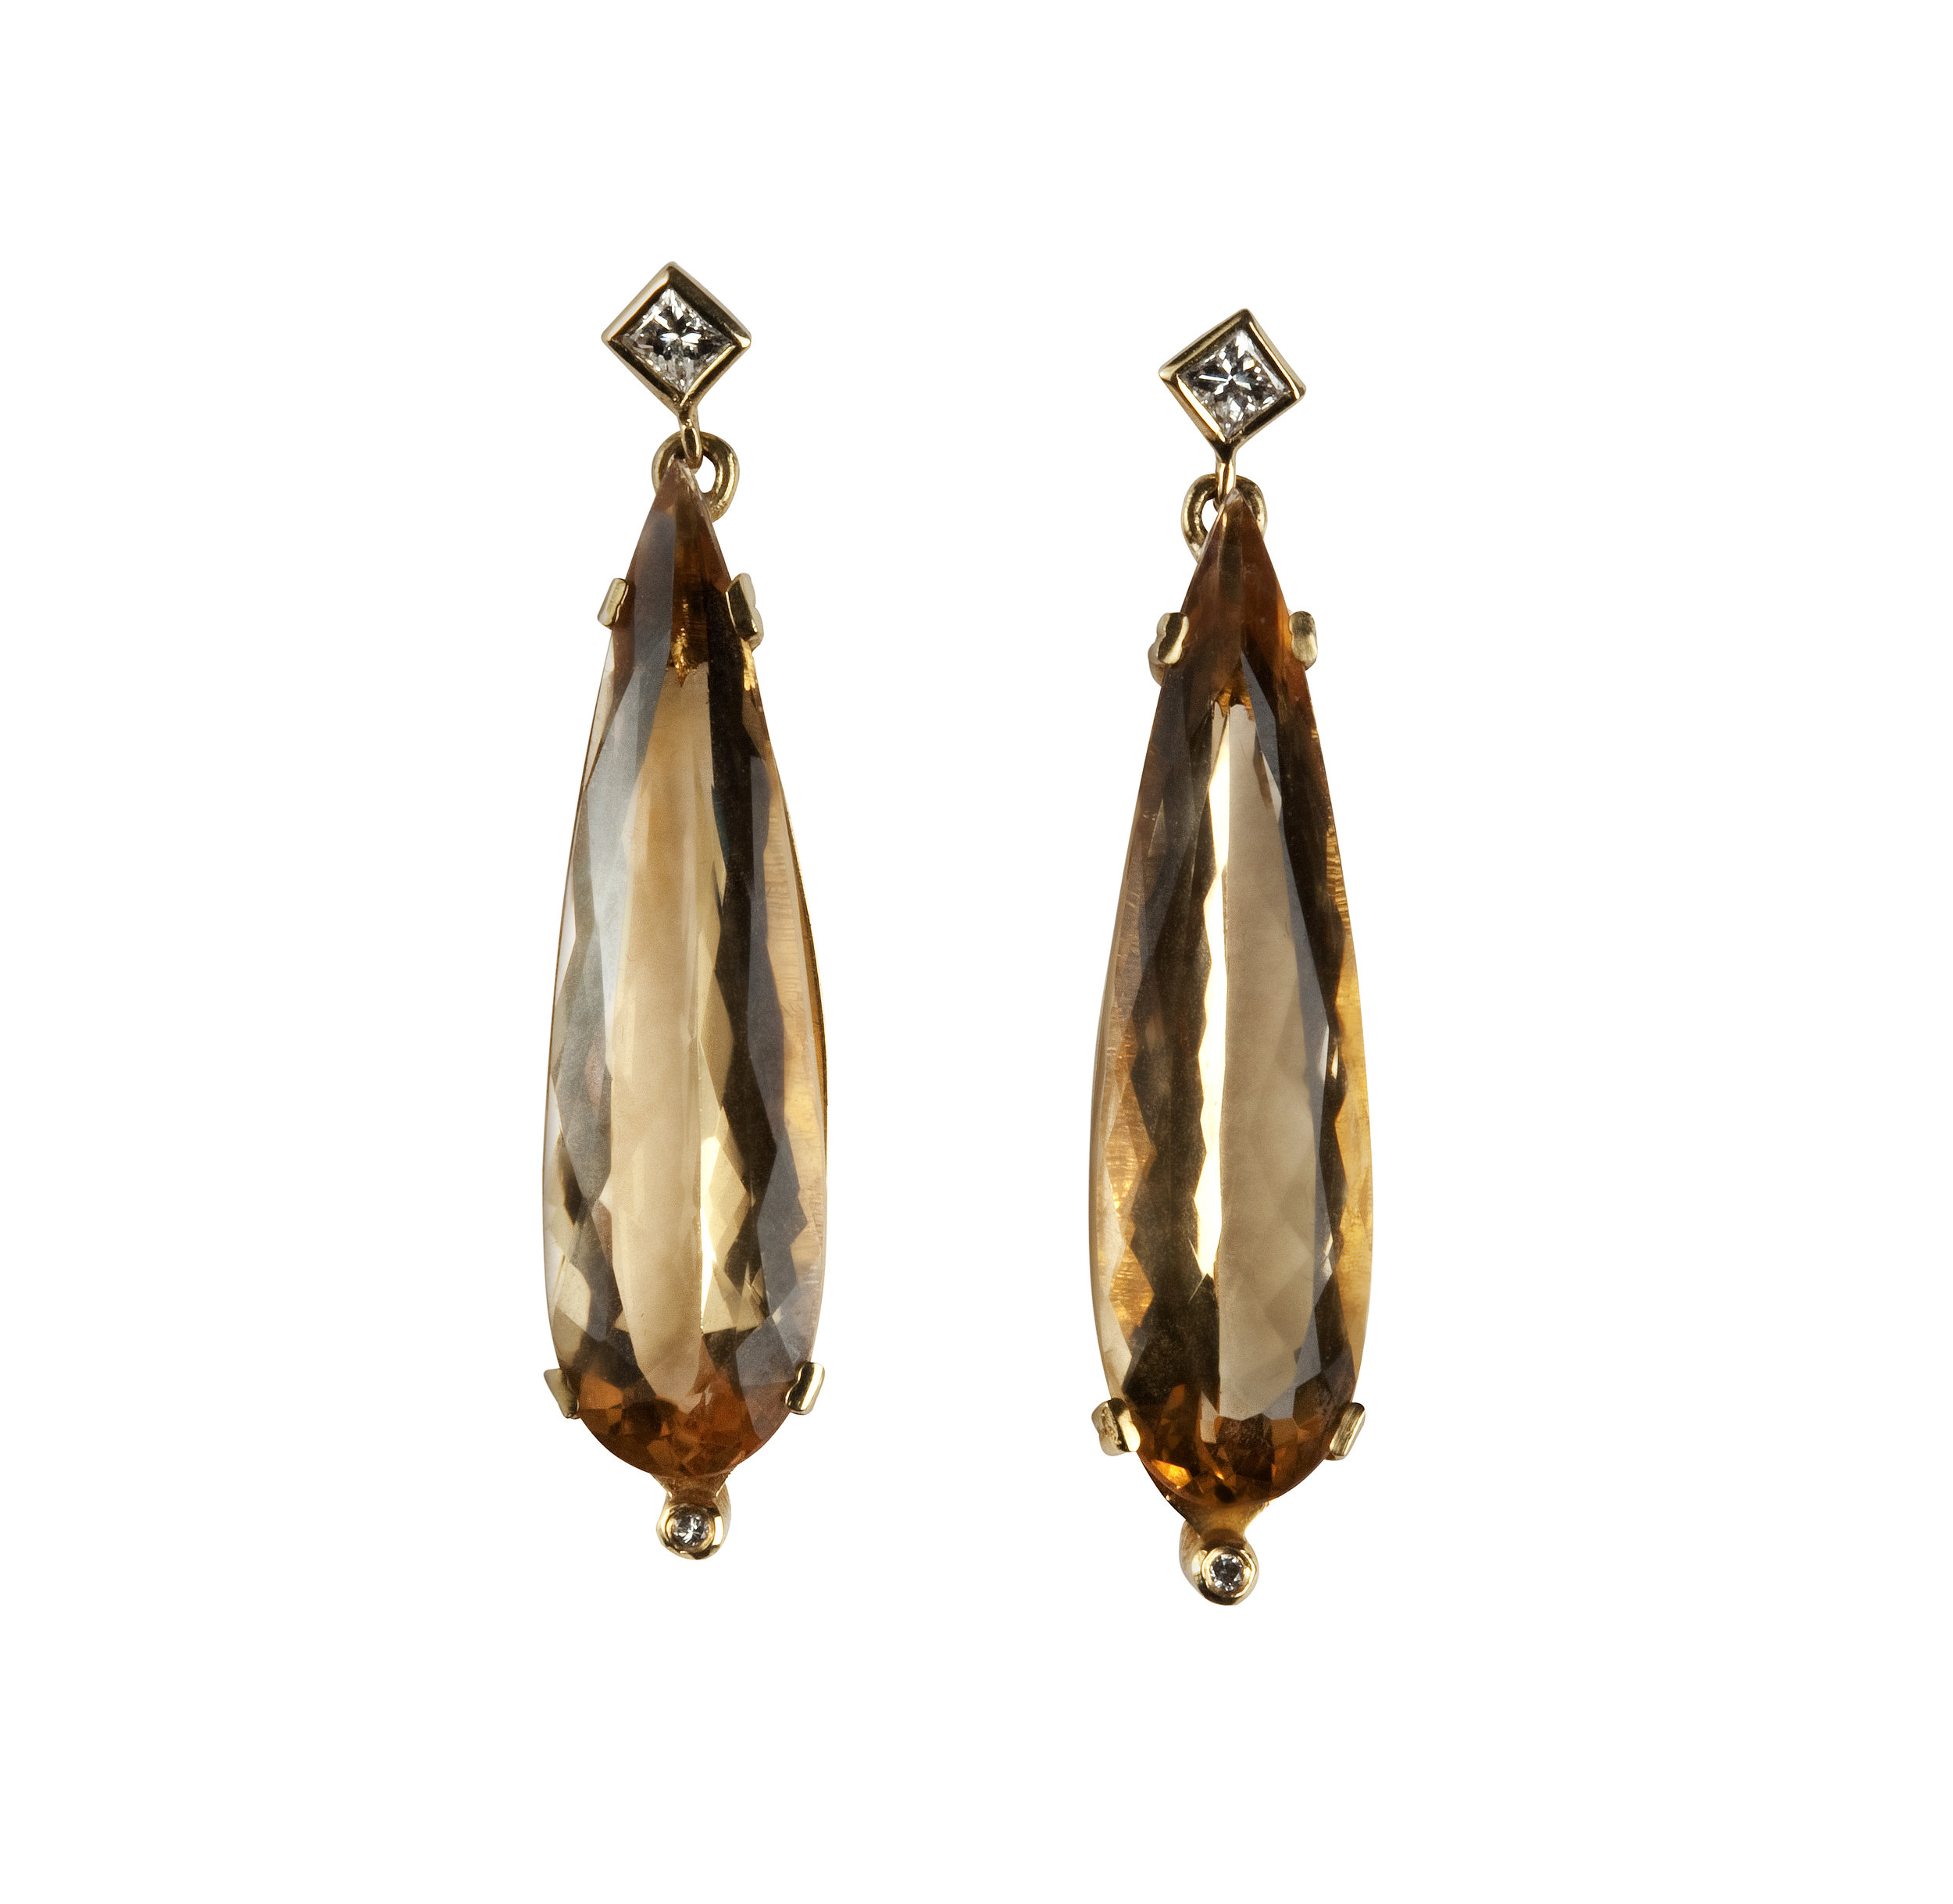 Golden Beryl and Diamond Earrings